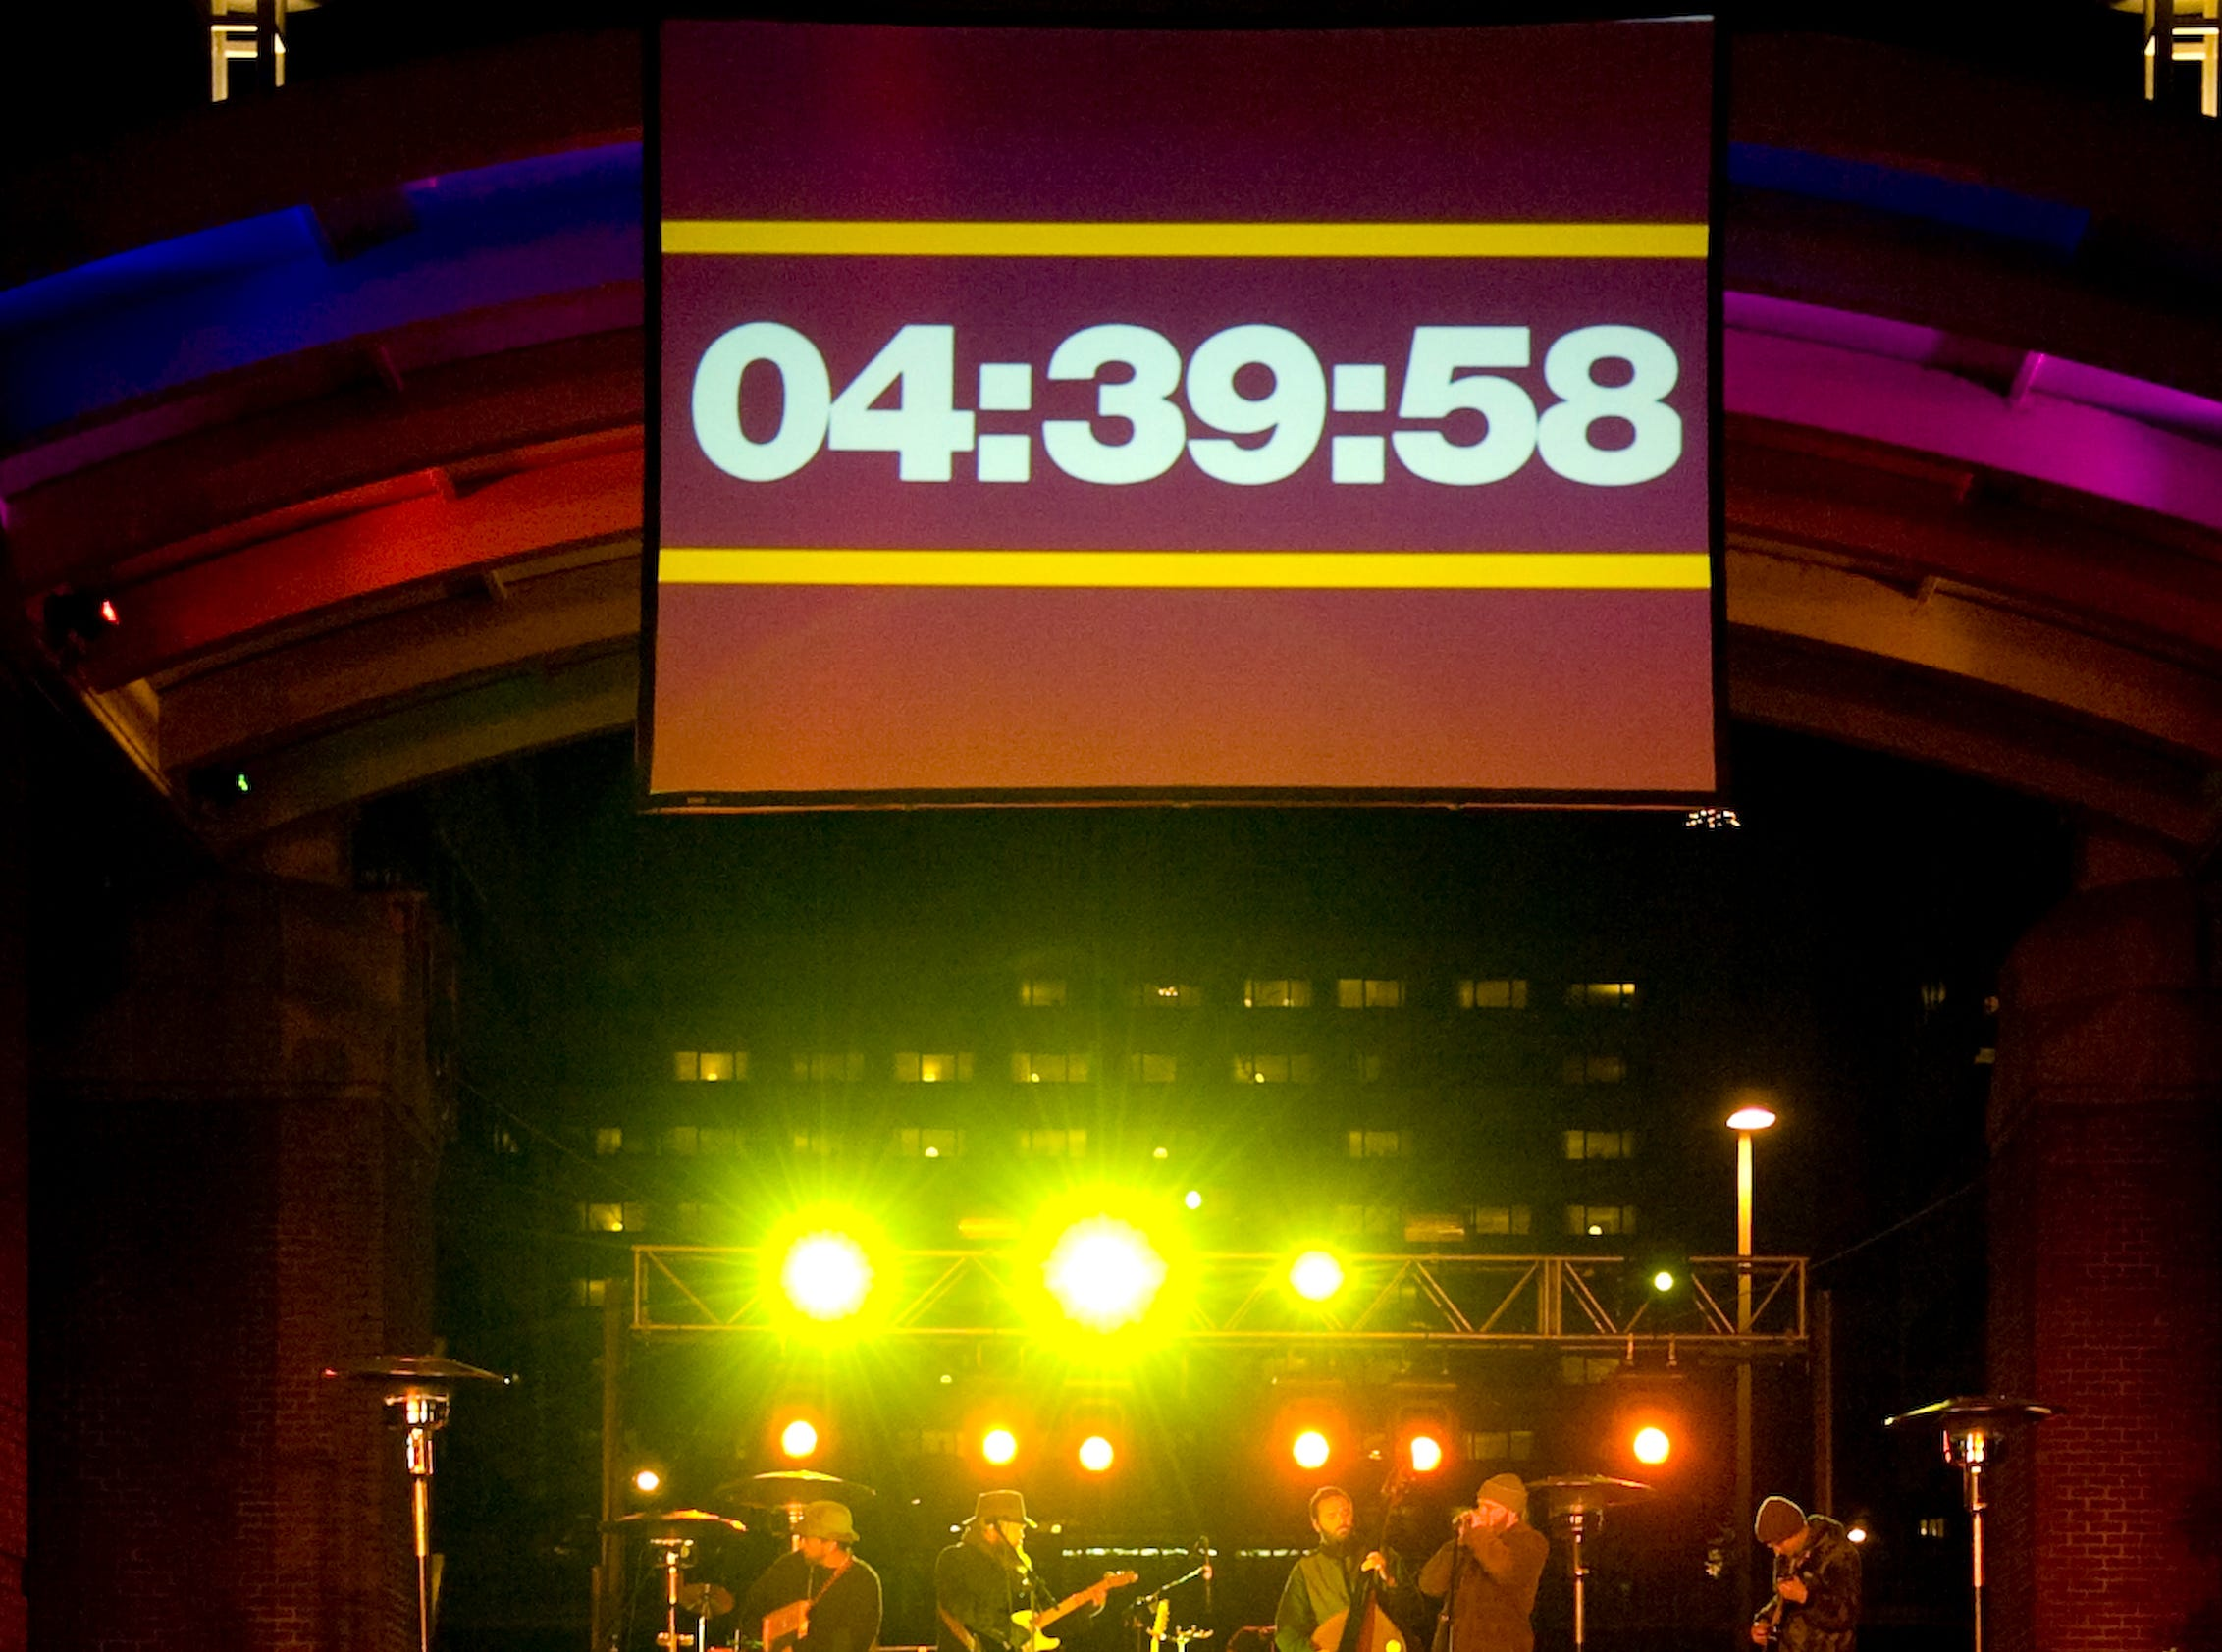 A large clock counts down the remaining hours to New Year's Day at the First Night festivities at Market Square.